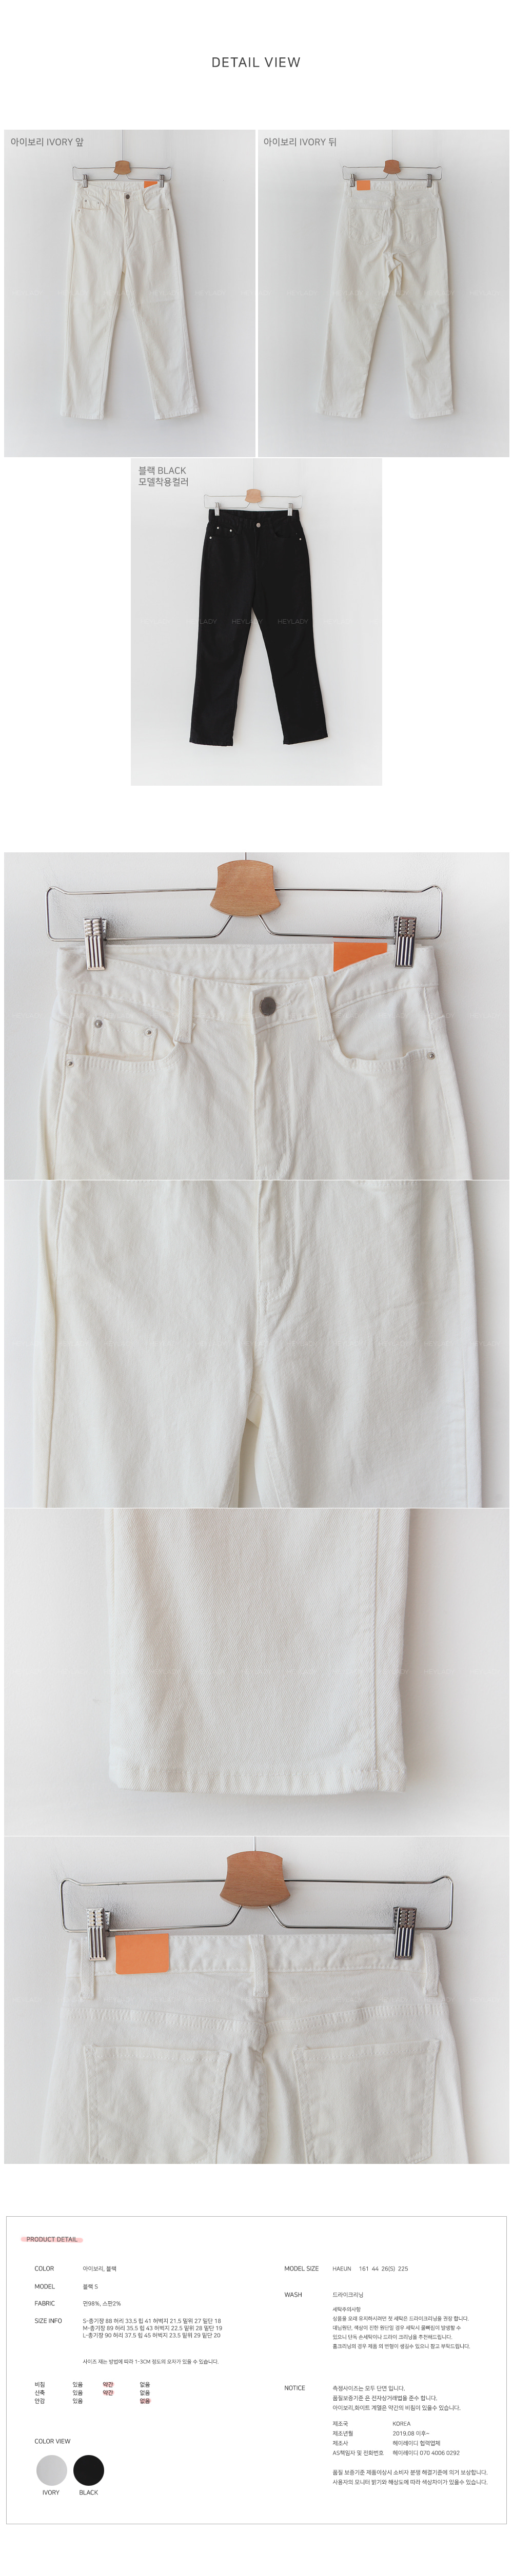 Pyrene-lined cotton pants